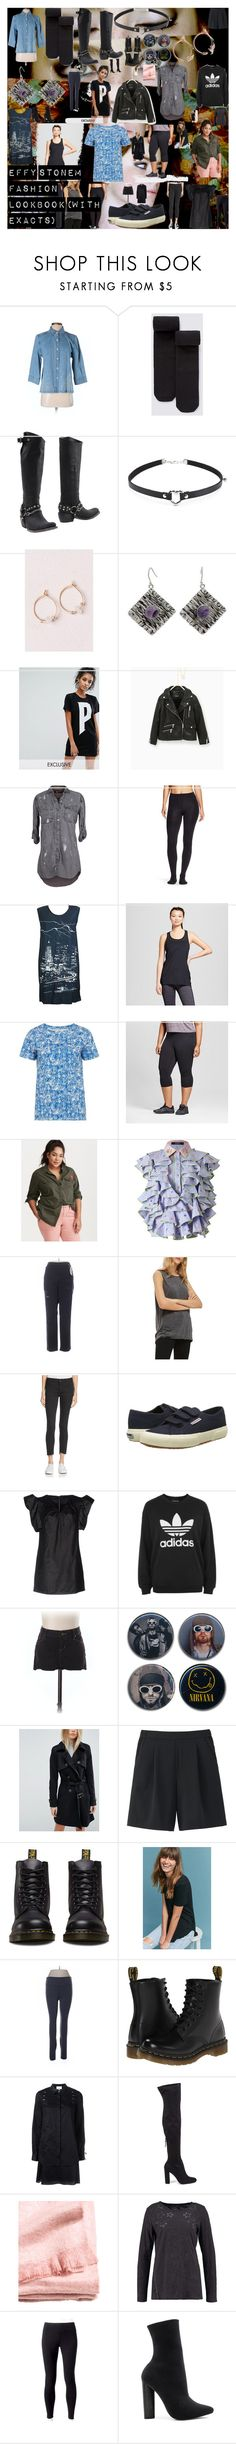 Effy Stonem Fashion Lookbook (With Exacts) by oroartye-1 on Polyvore featuring Maison Margiela, 3.1 Phillip Lim, Puma, Others Follow, Supersweet, The Nu Vintage, Left of Center, Torrid, adidas and People Tree